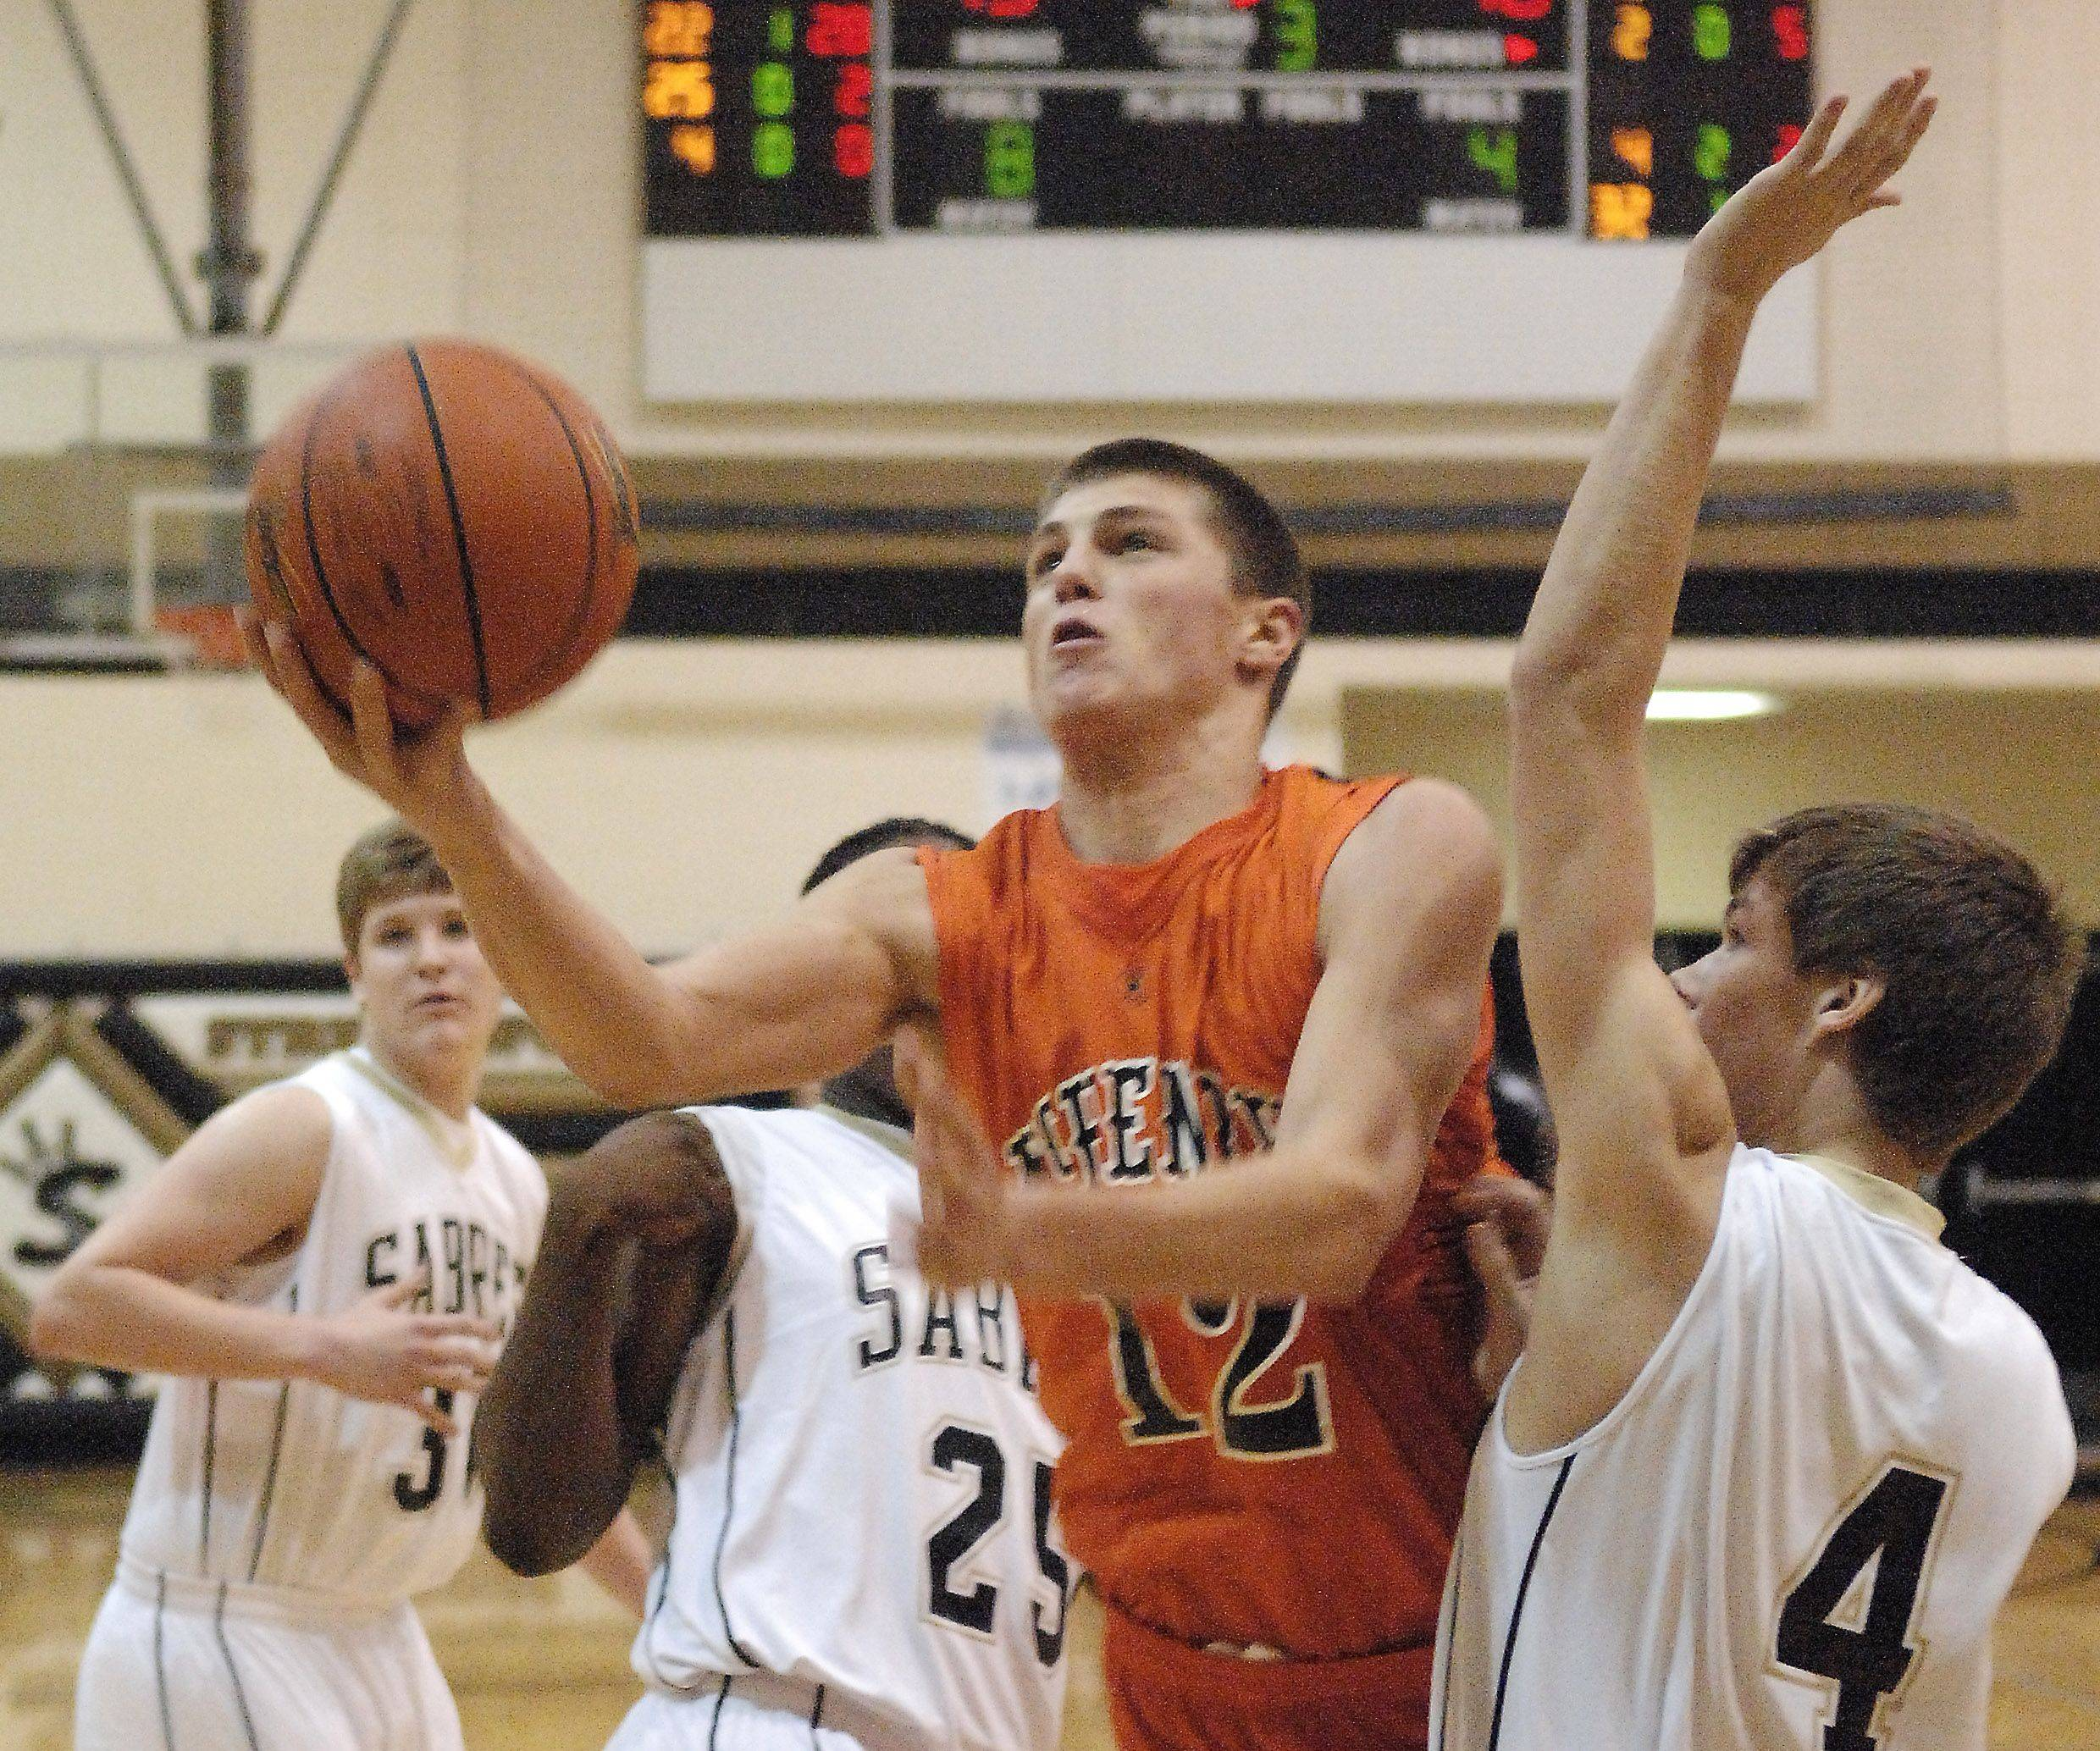 Images: McHenry vs. Streamwood boys basketball